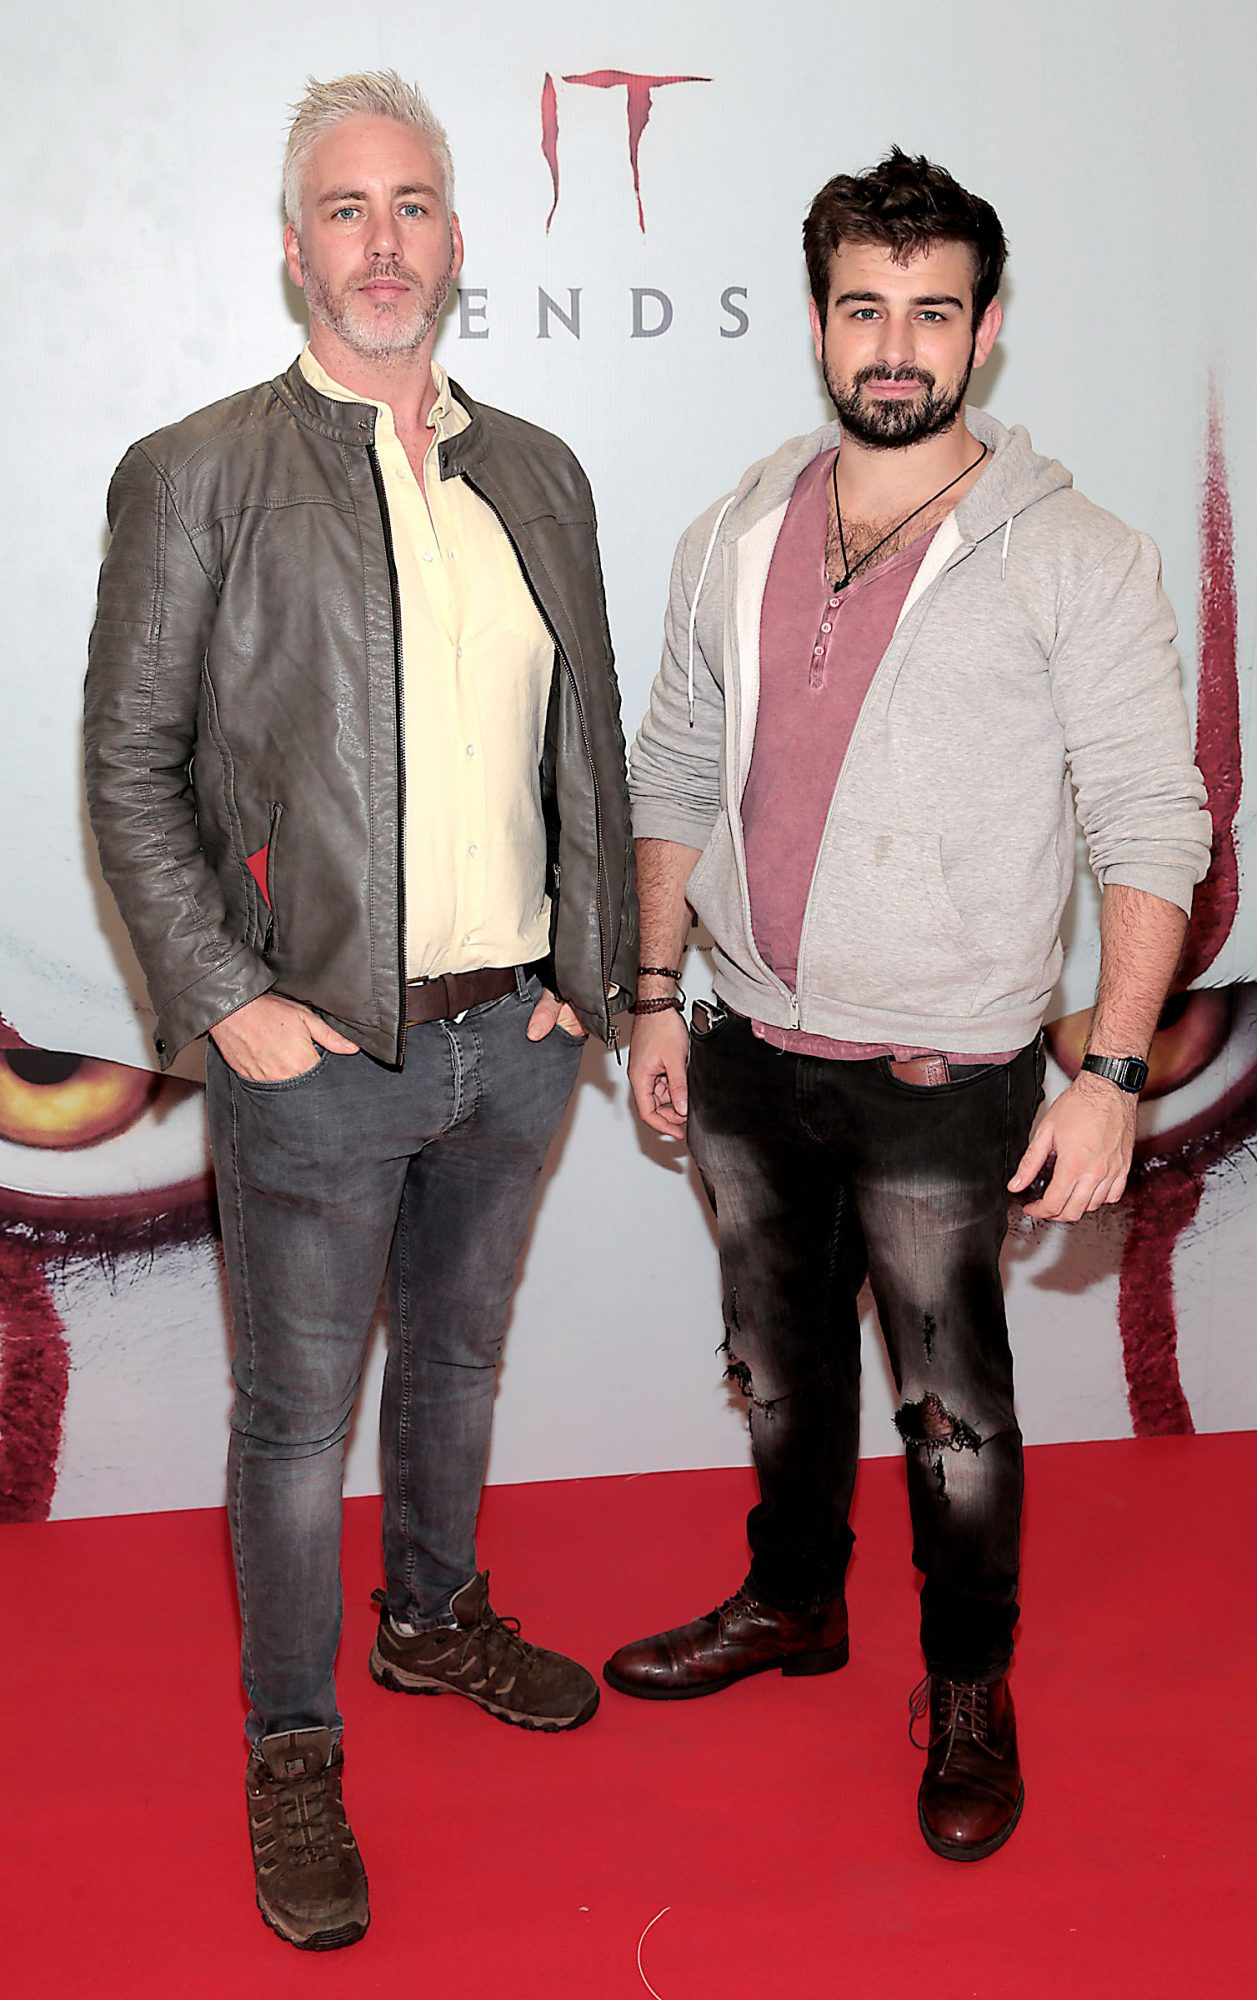 Patrick Murphy and Ben O Beirne at the Irish premiere of IT Chapter 2 at the Odeon Cinema in Point Square, Dublin. Pic: Brian McEvoy.